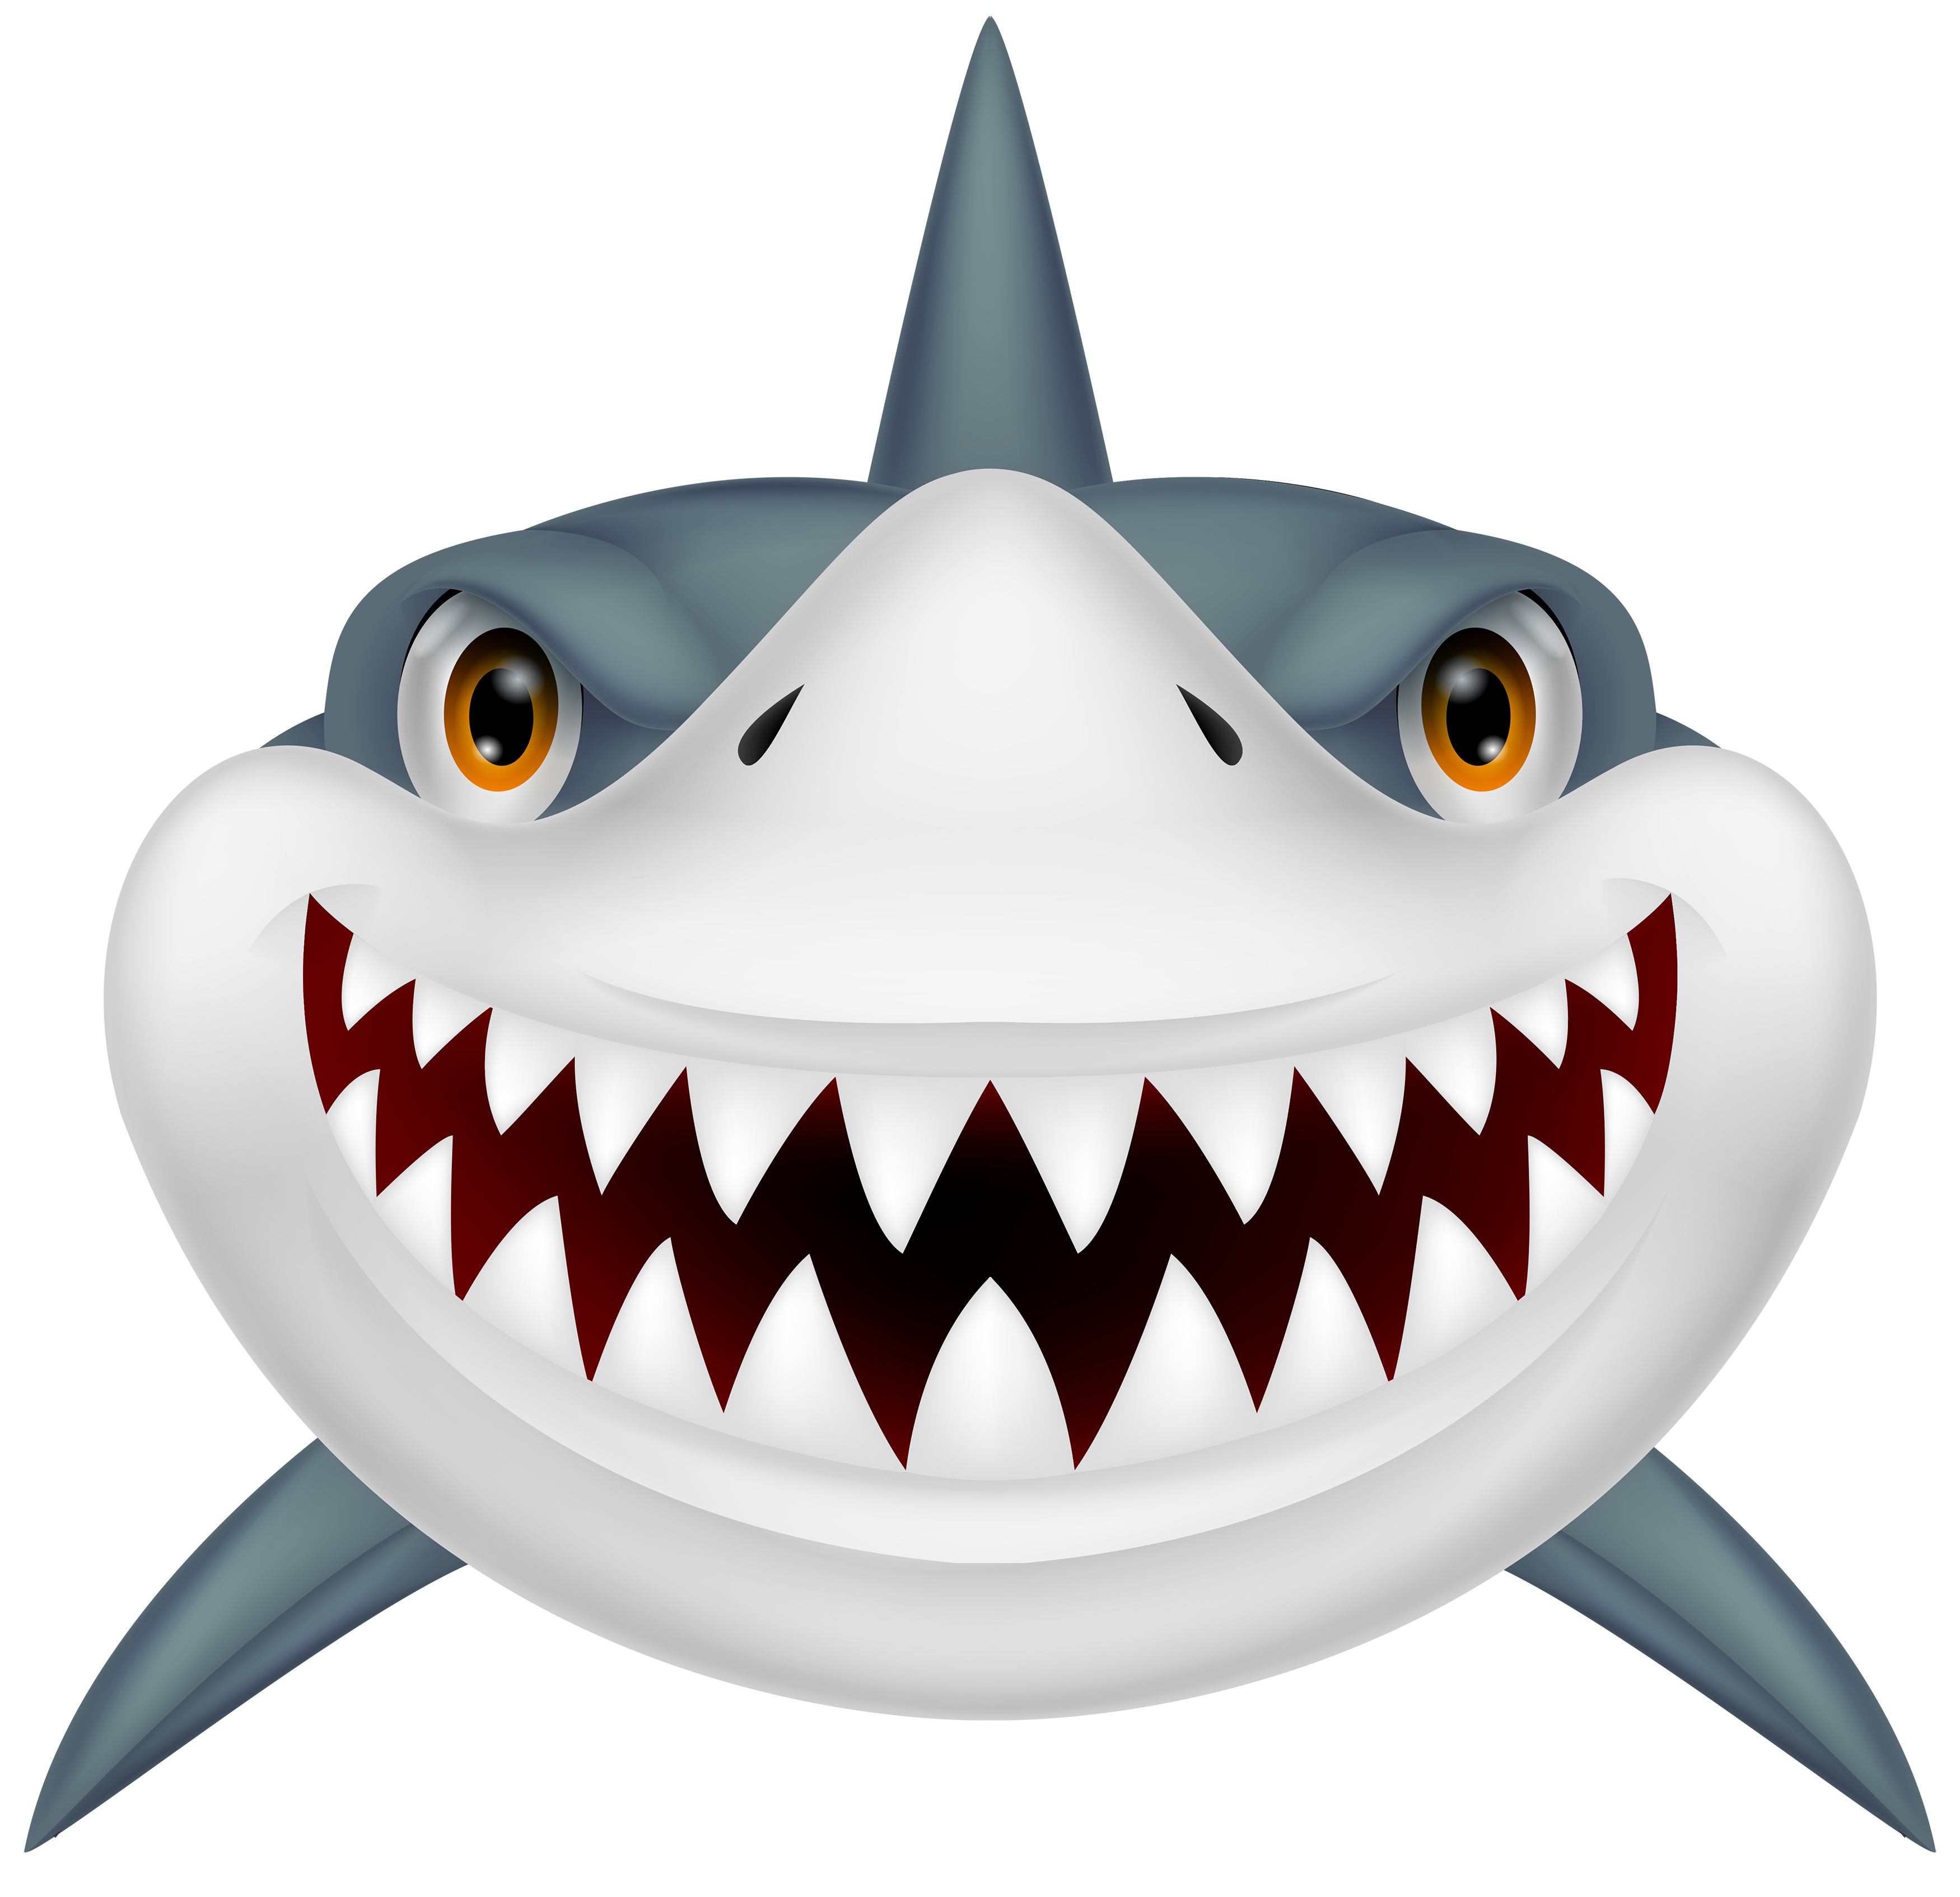 Scary png best web. Family clipart shark